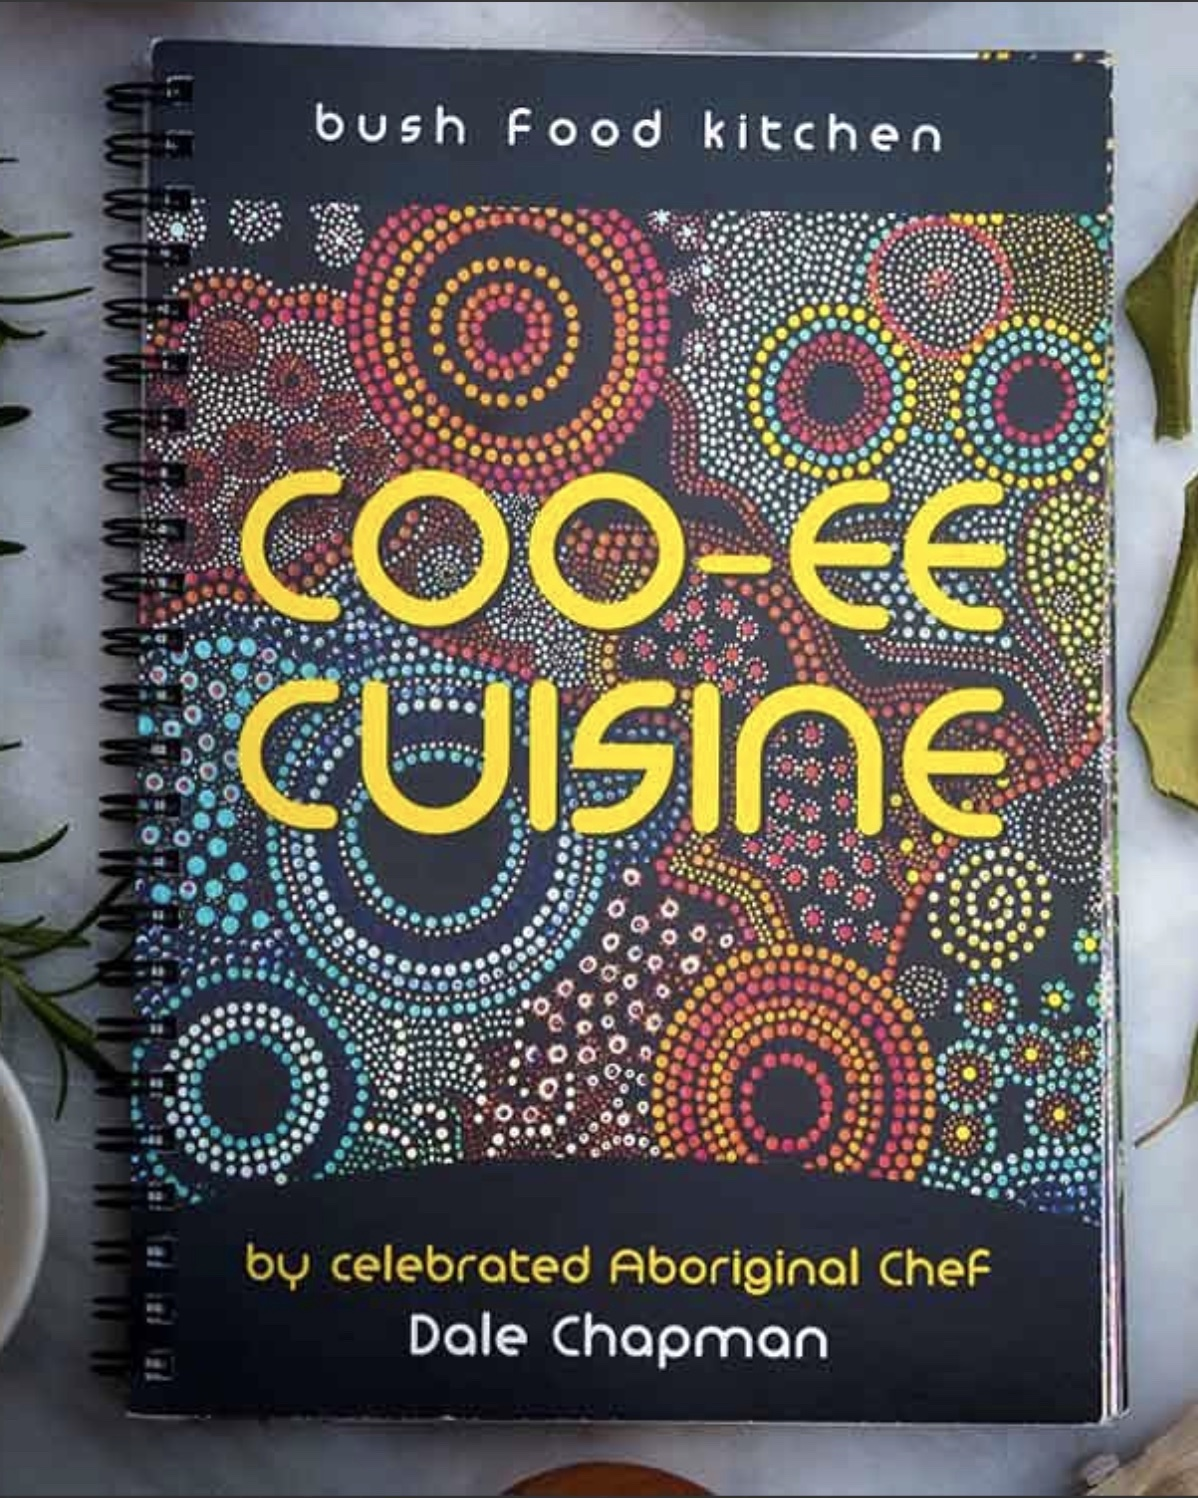 Cooking with bush tucker cookbook